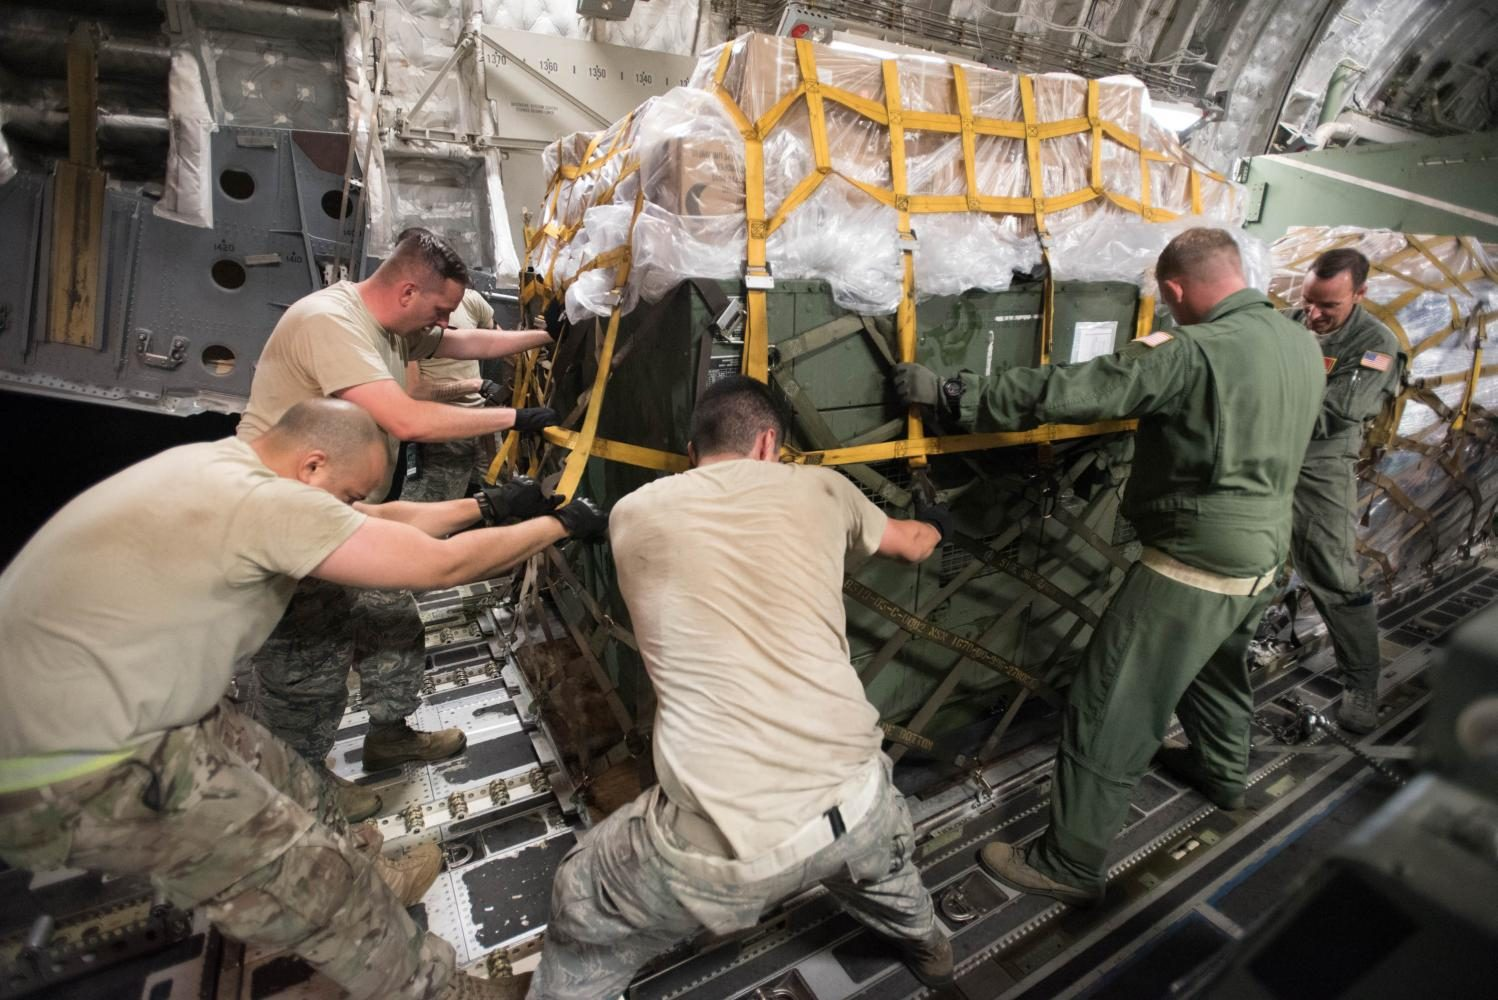 Airmen+from+the+Kentucky+and+Tennessee+Air+National+Guard+load+a+container+of+cargo+onto+a+Tennessee+Air+Guard+C-17+at+the+Kentucky+Air+National+Guard+Base+in+Louisville%2C+Ky.%2C+Aug.+29%2C+2017+in+preparation+for+Hurricane+Harvey+rescue+efforts+in+Texas.+More+than+40+Airmen+from+the+Kentucky+and+Mississippi+Air+National+Guard+are+deploying+to+George+Bush+Intercontinental+Airport+in+Houston%2C+where+they+will+rapidly+establish+airfield%2C+aeromedical+evacuation+and+cargo+operations.+